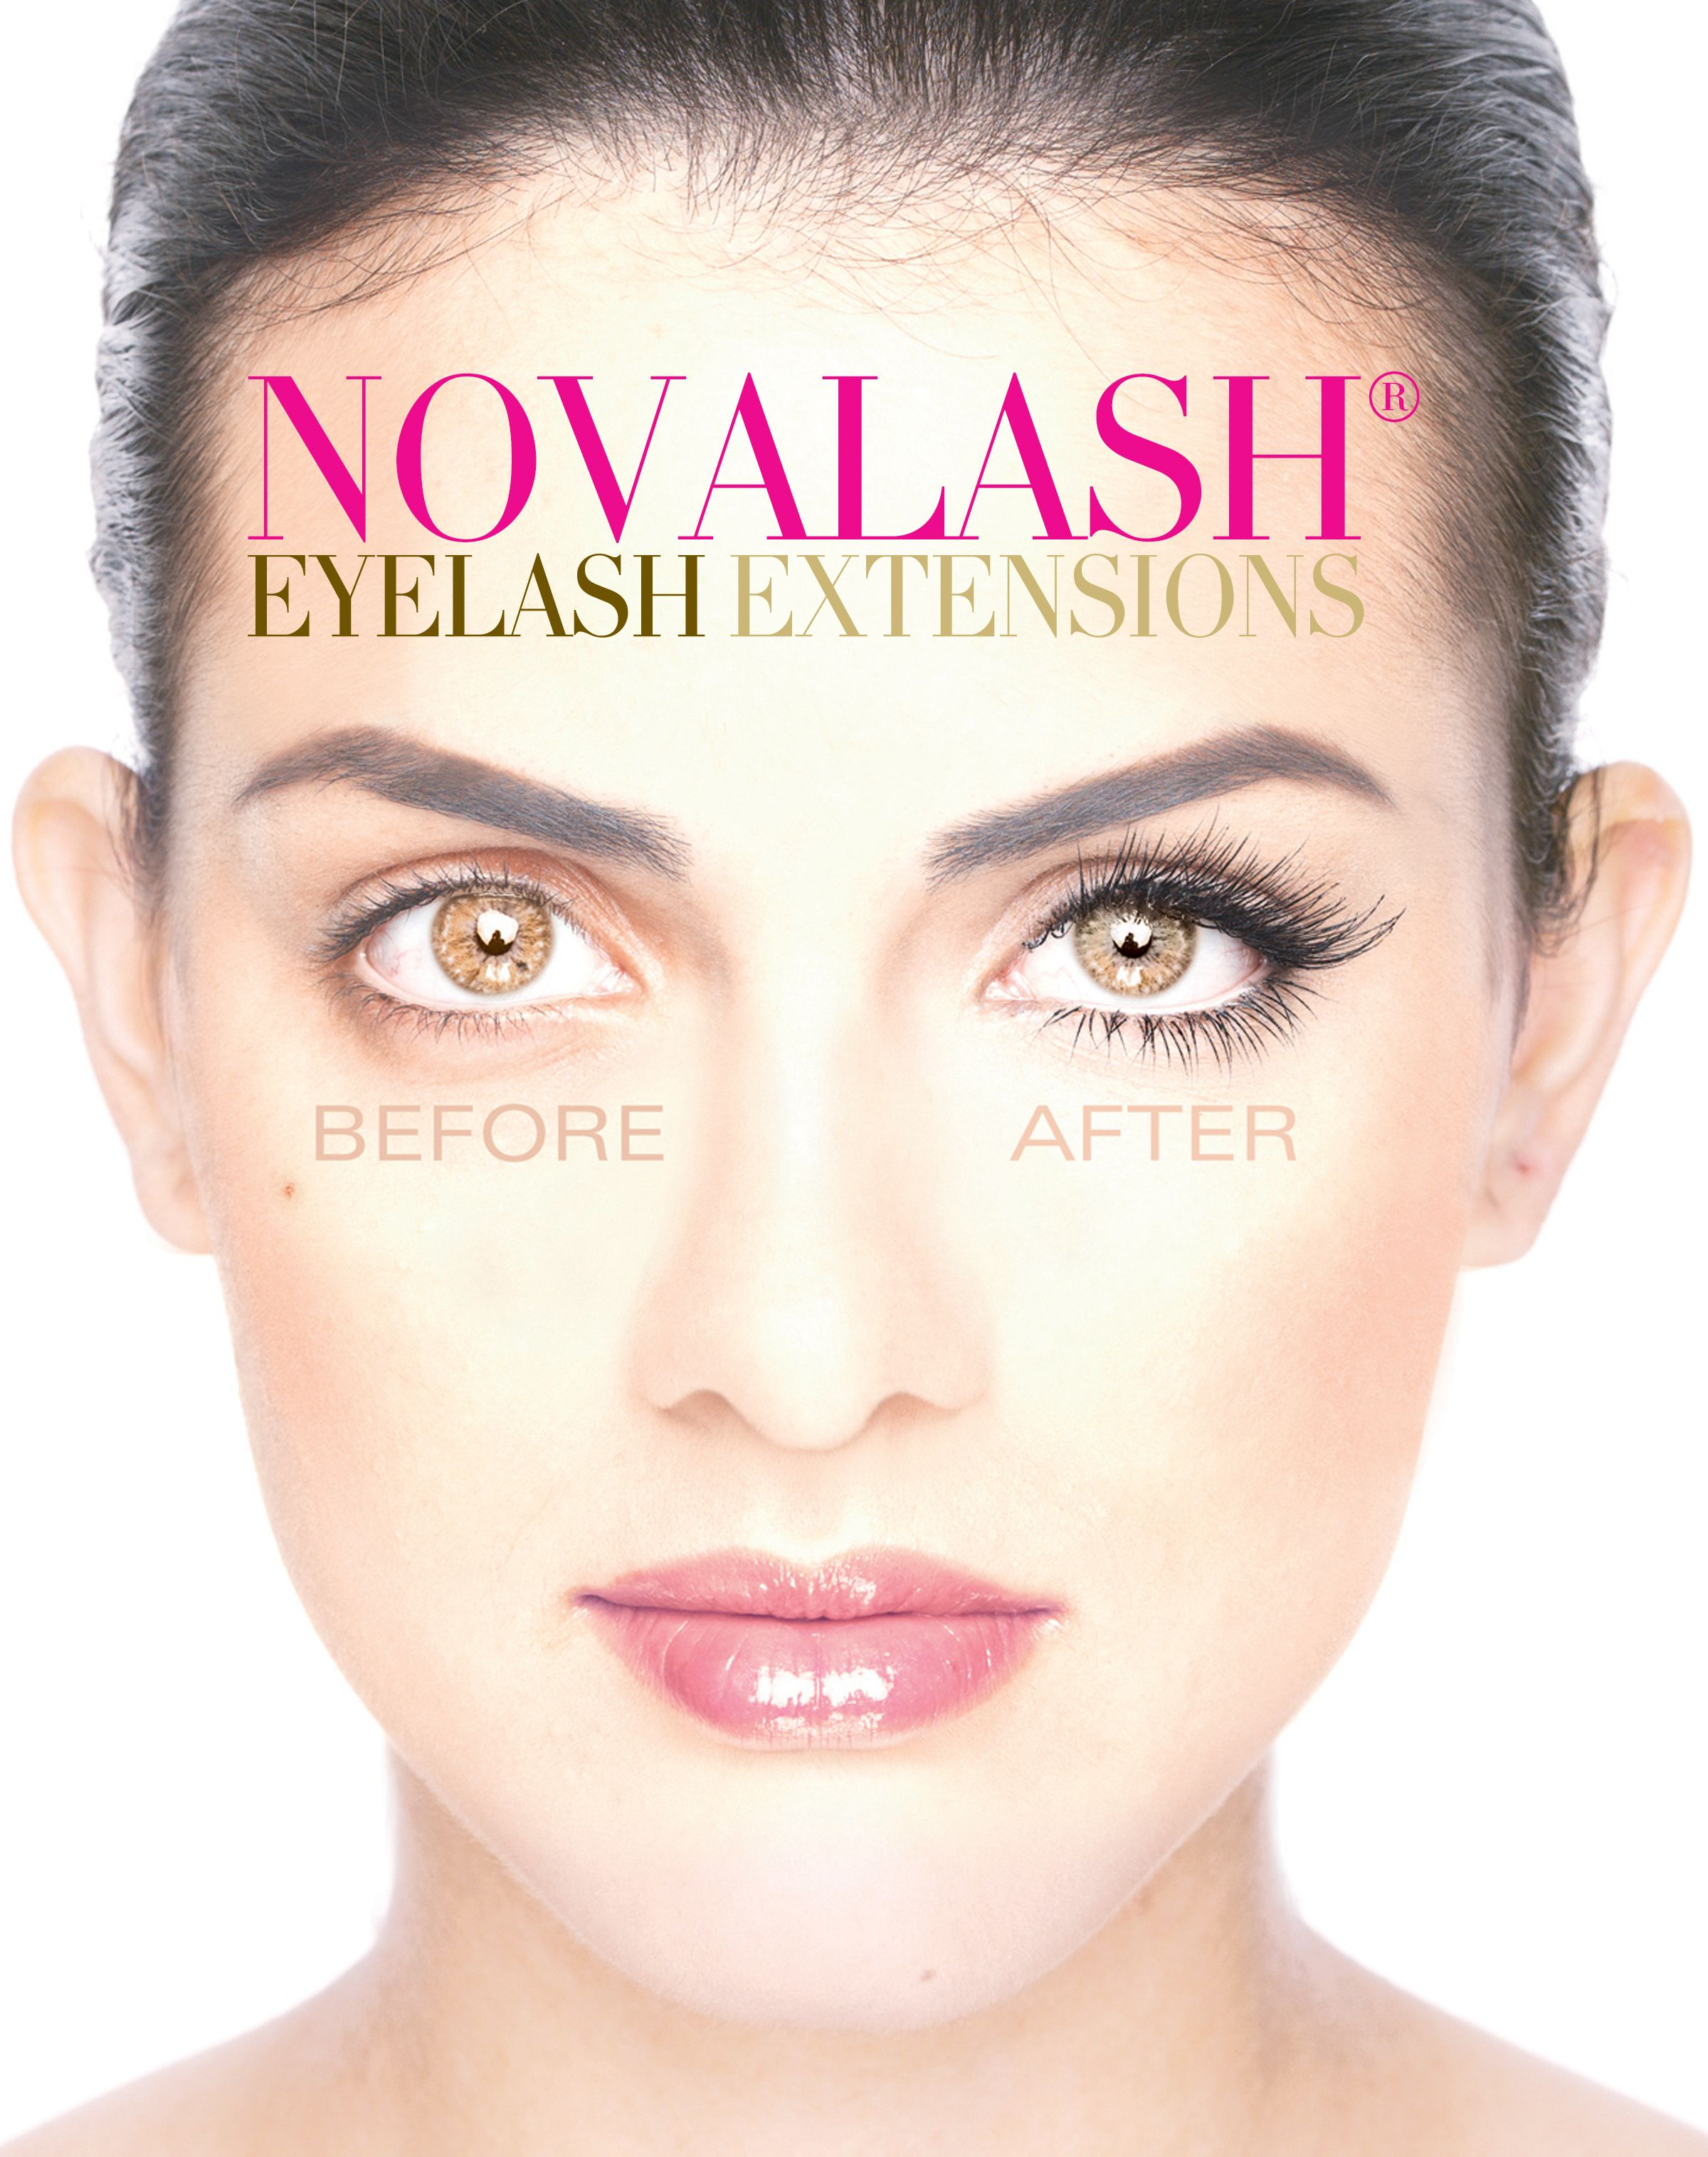 Novalash Eyelash Extensions Are Meticulously Applied Lash By Lash